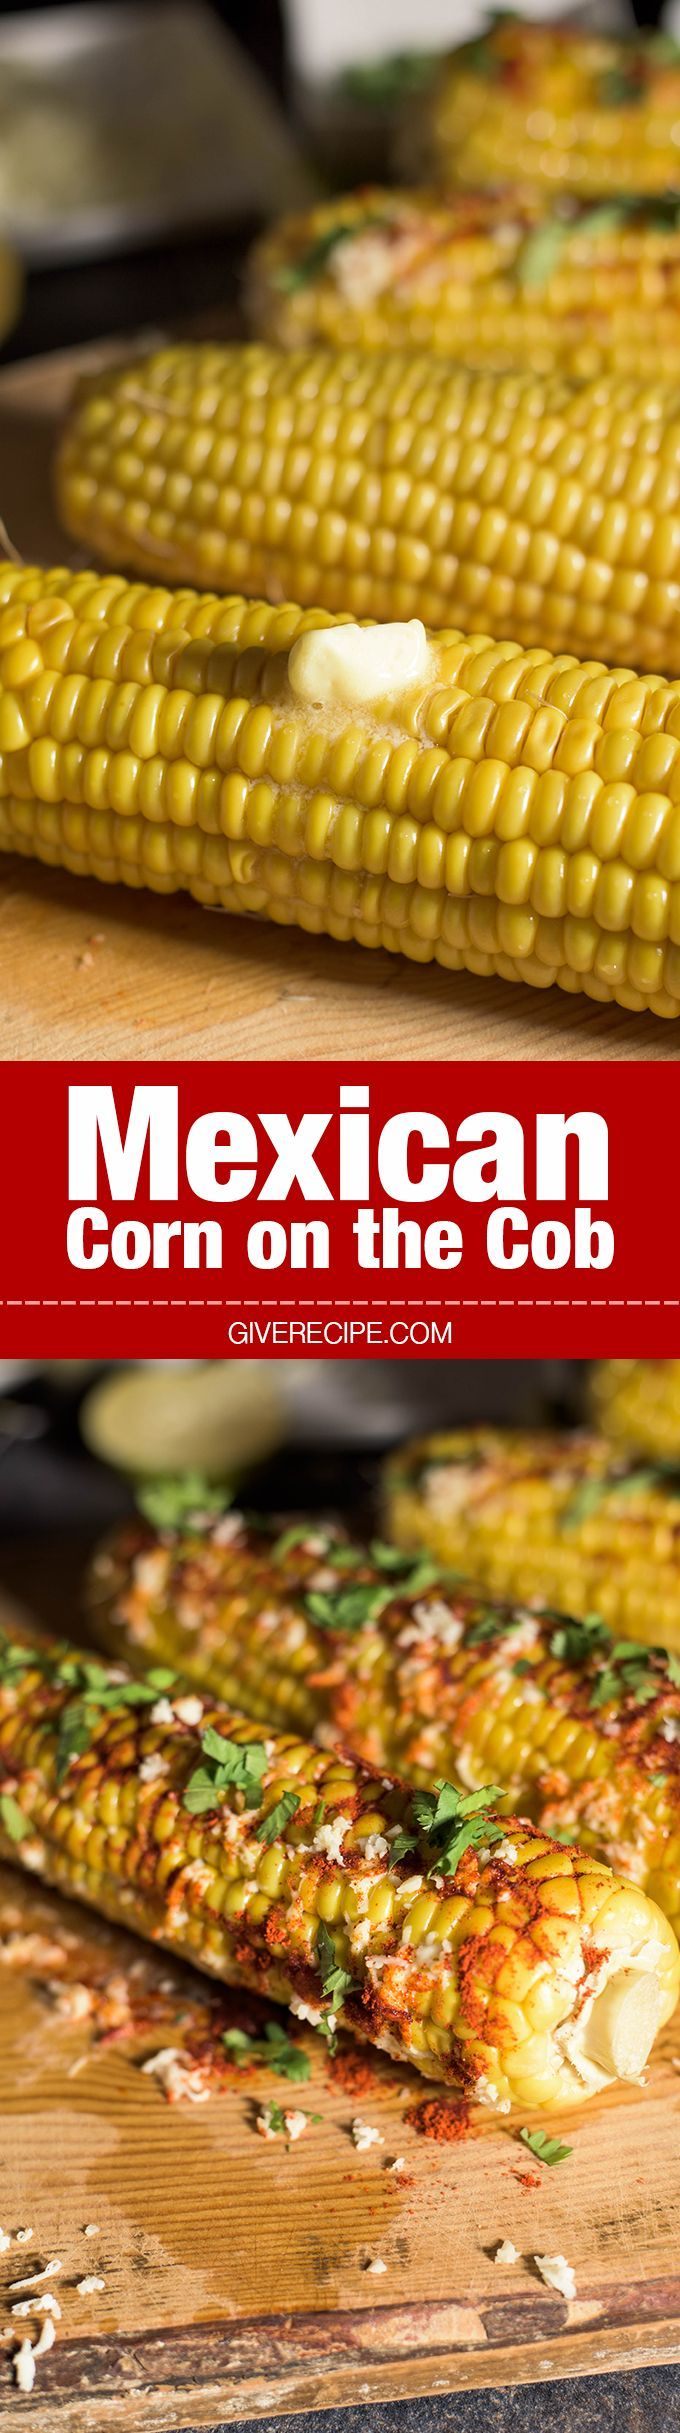 Mexican Corn on the Cob is the best summer snack around the world! Very messy and addicting! - http://giverecipe.com